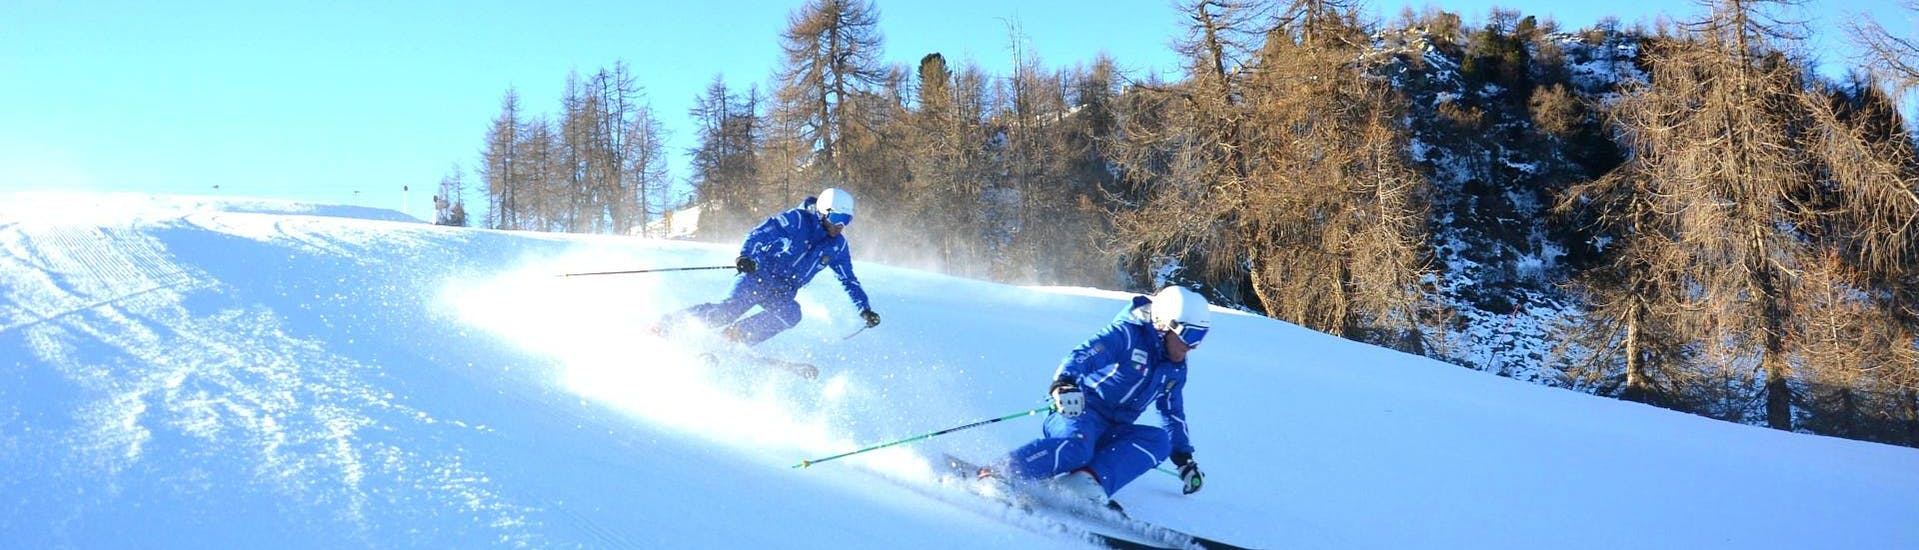 Ski Lessons for Adults - All Levels of the Folgarida Dimaro Ski School are taking place, participants are training on the slopes of Val di Sole.